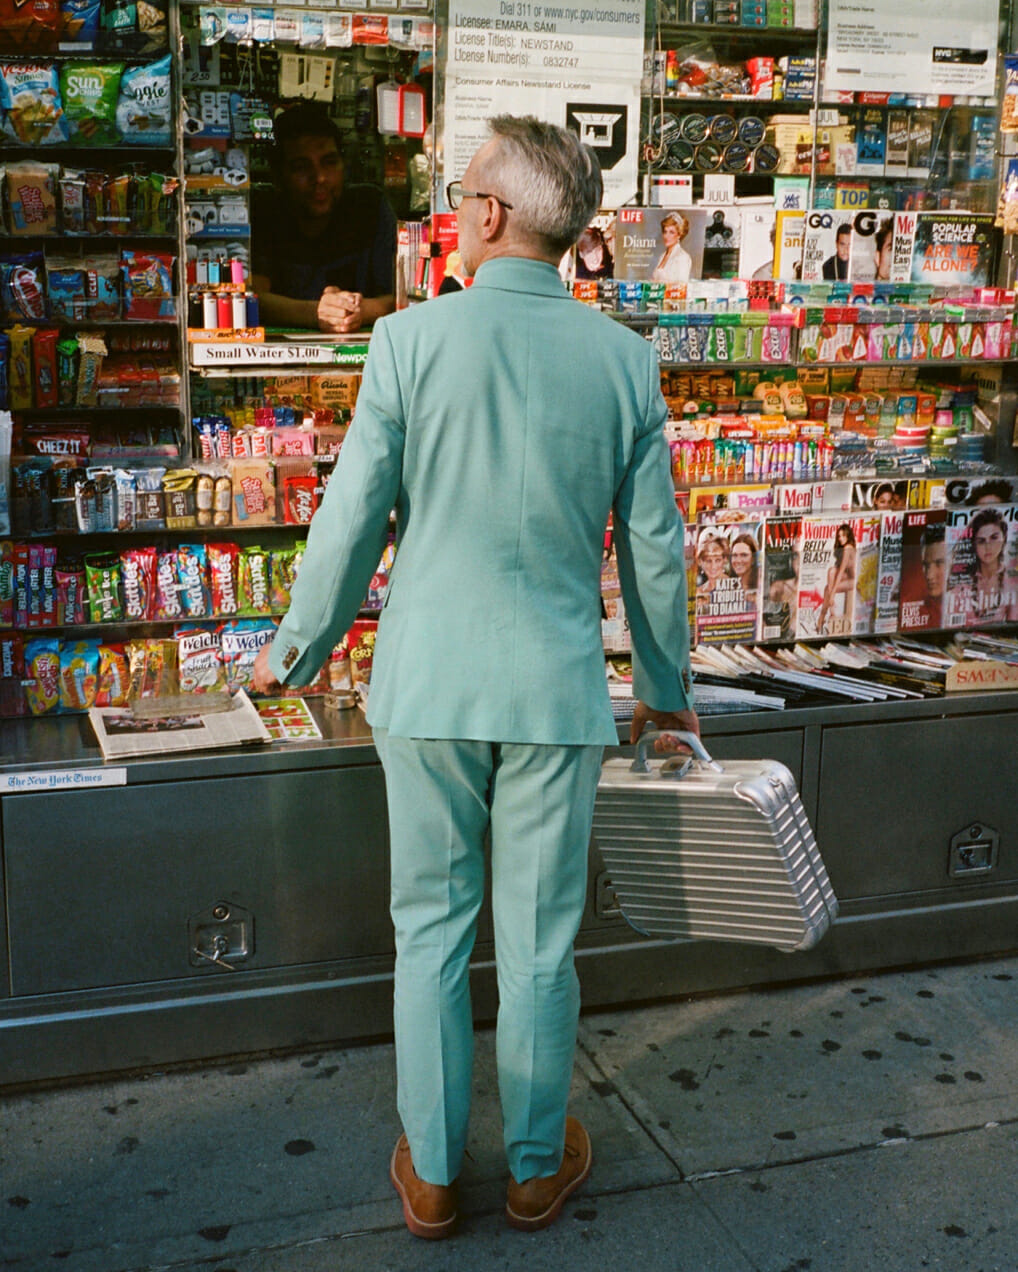 Man in a teal suit stops by magazine stand in a street style shot.